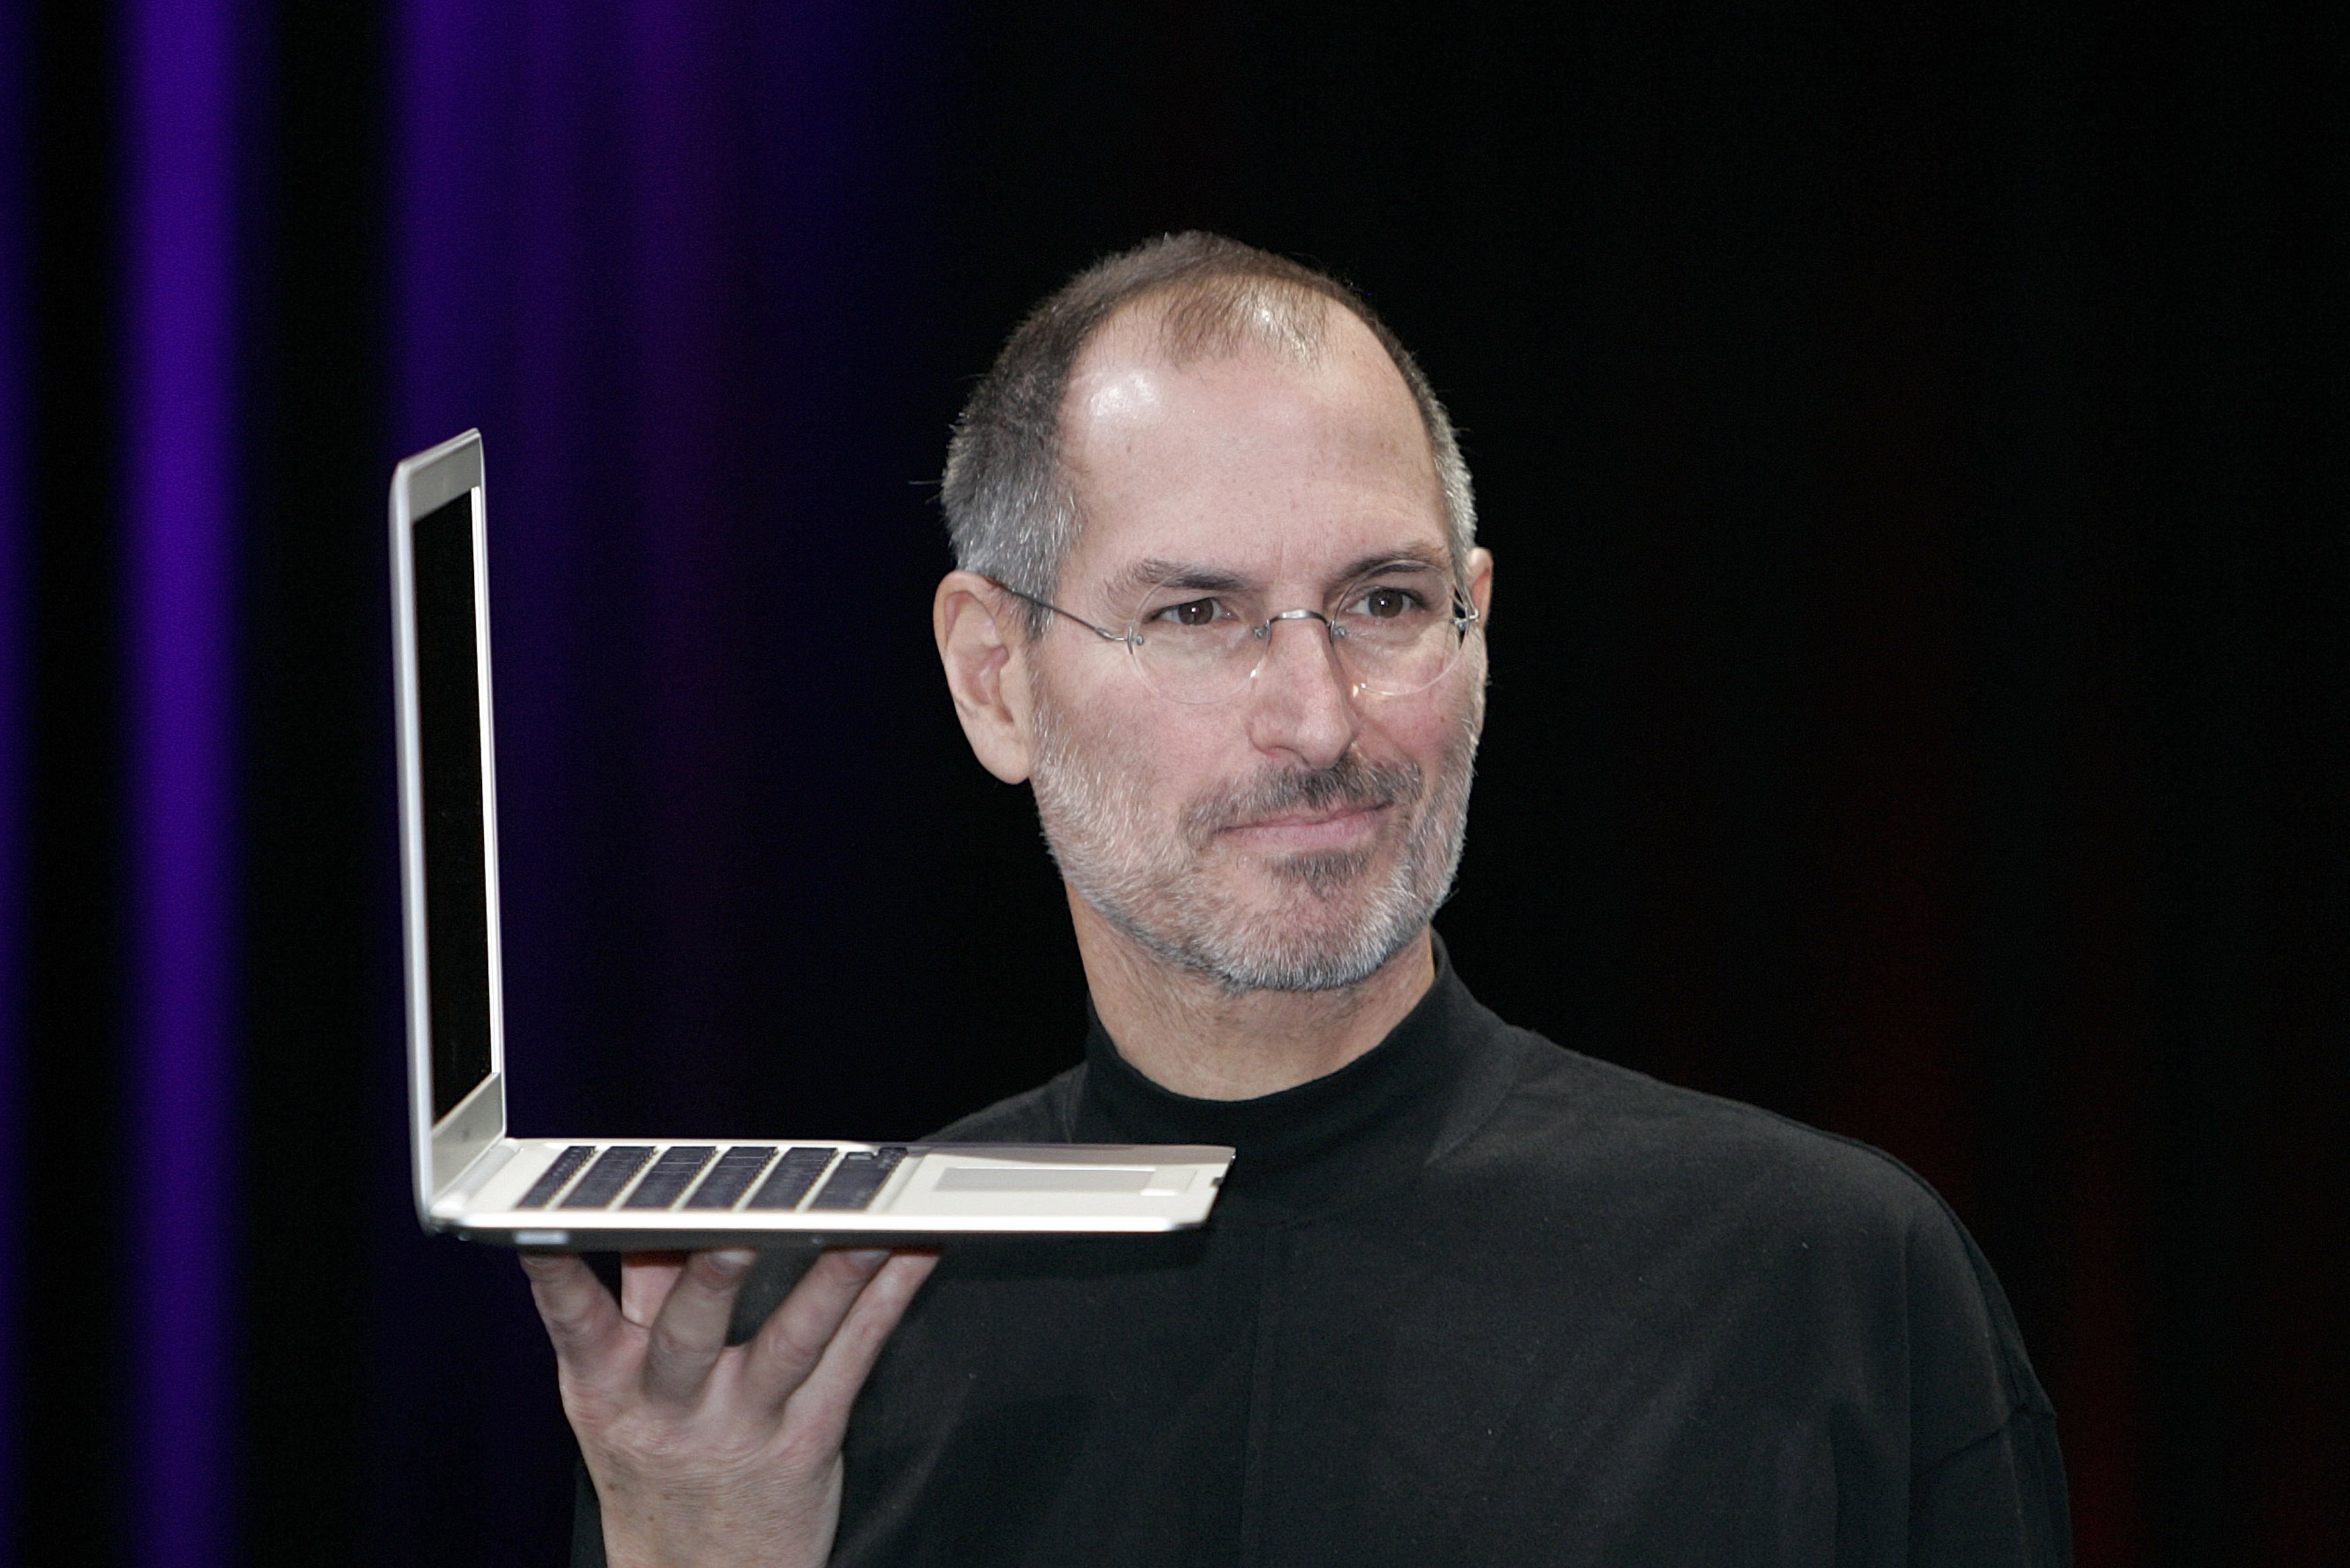 Steve Jobs Delivers Keynote Speech At Macworld Conference & Expo